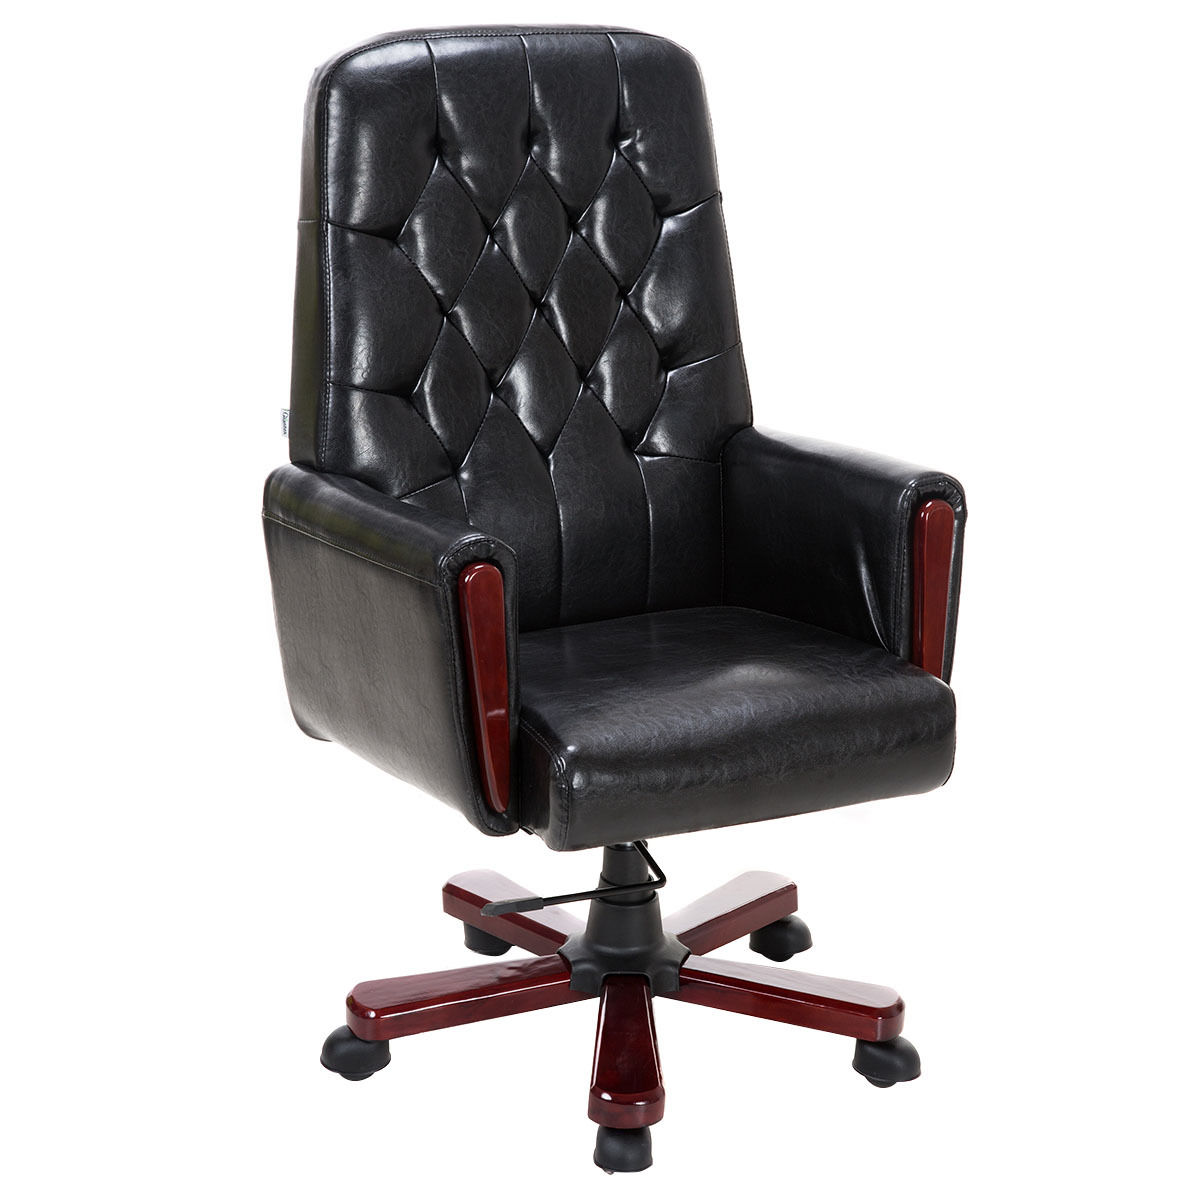 Giantex Modern High Back PU Leather Office Chair Guest Living Rooom Accent Chair Swivel Adjustable Furniture HW52604